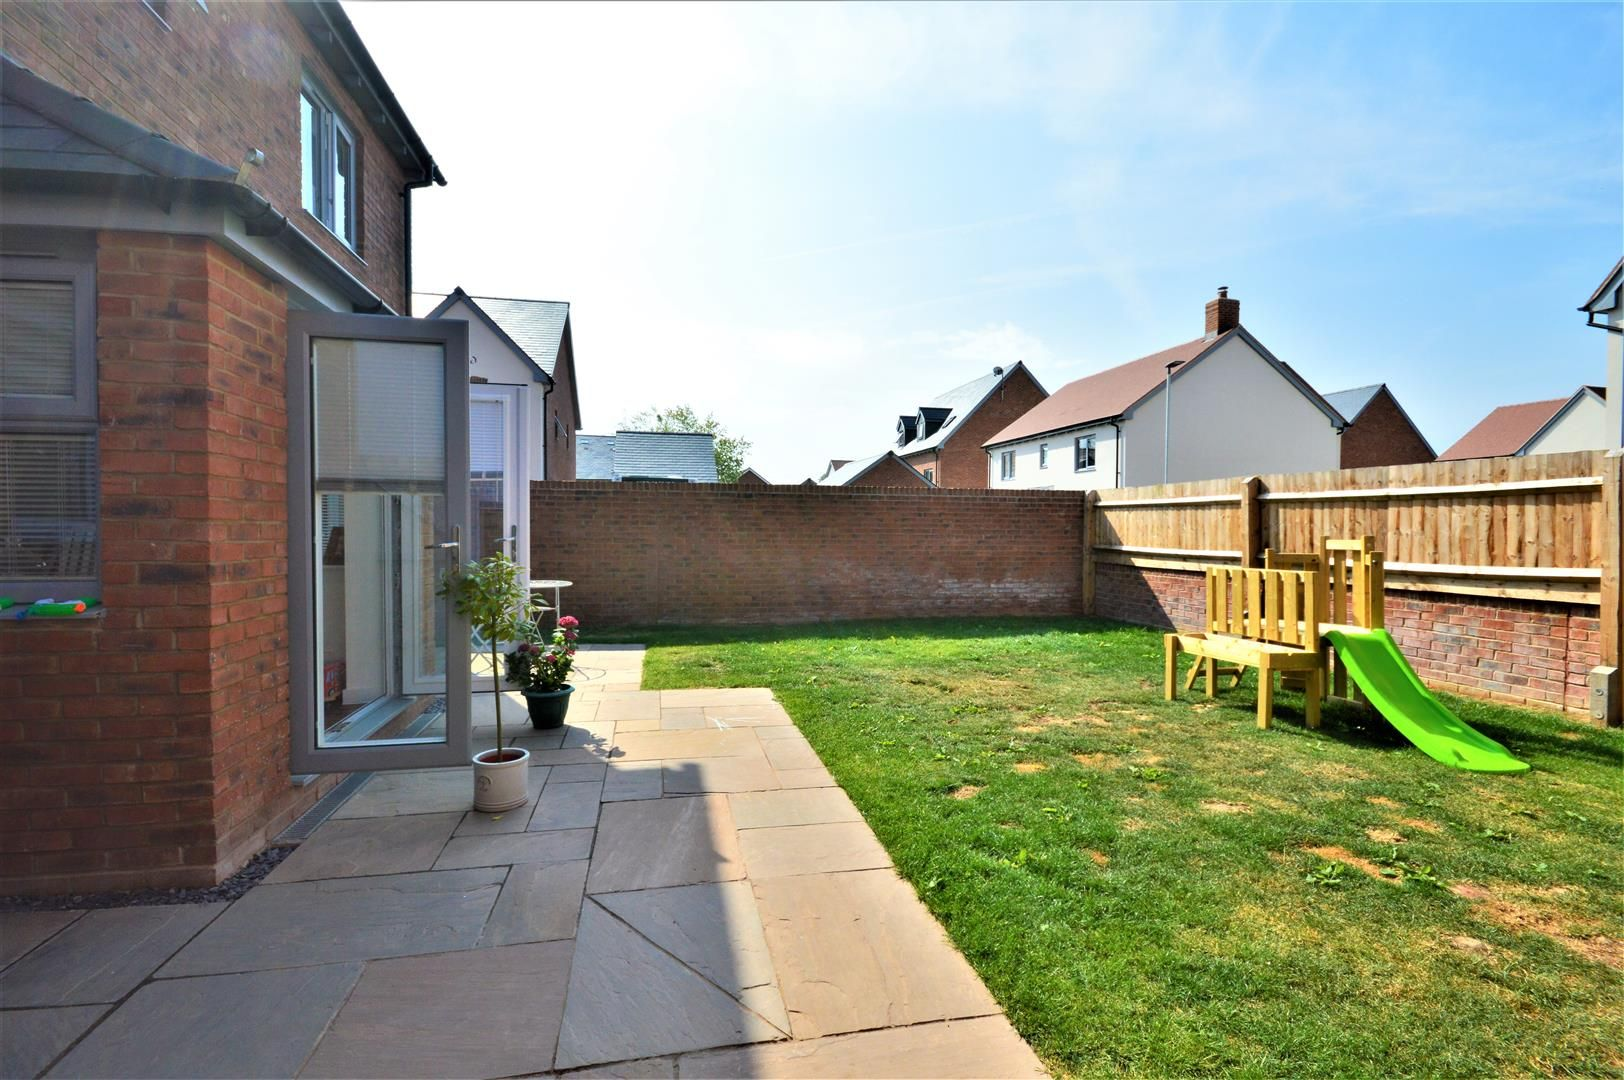 4 bed detached for sale in Weobley 21